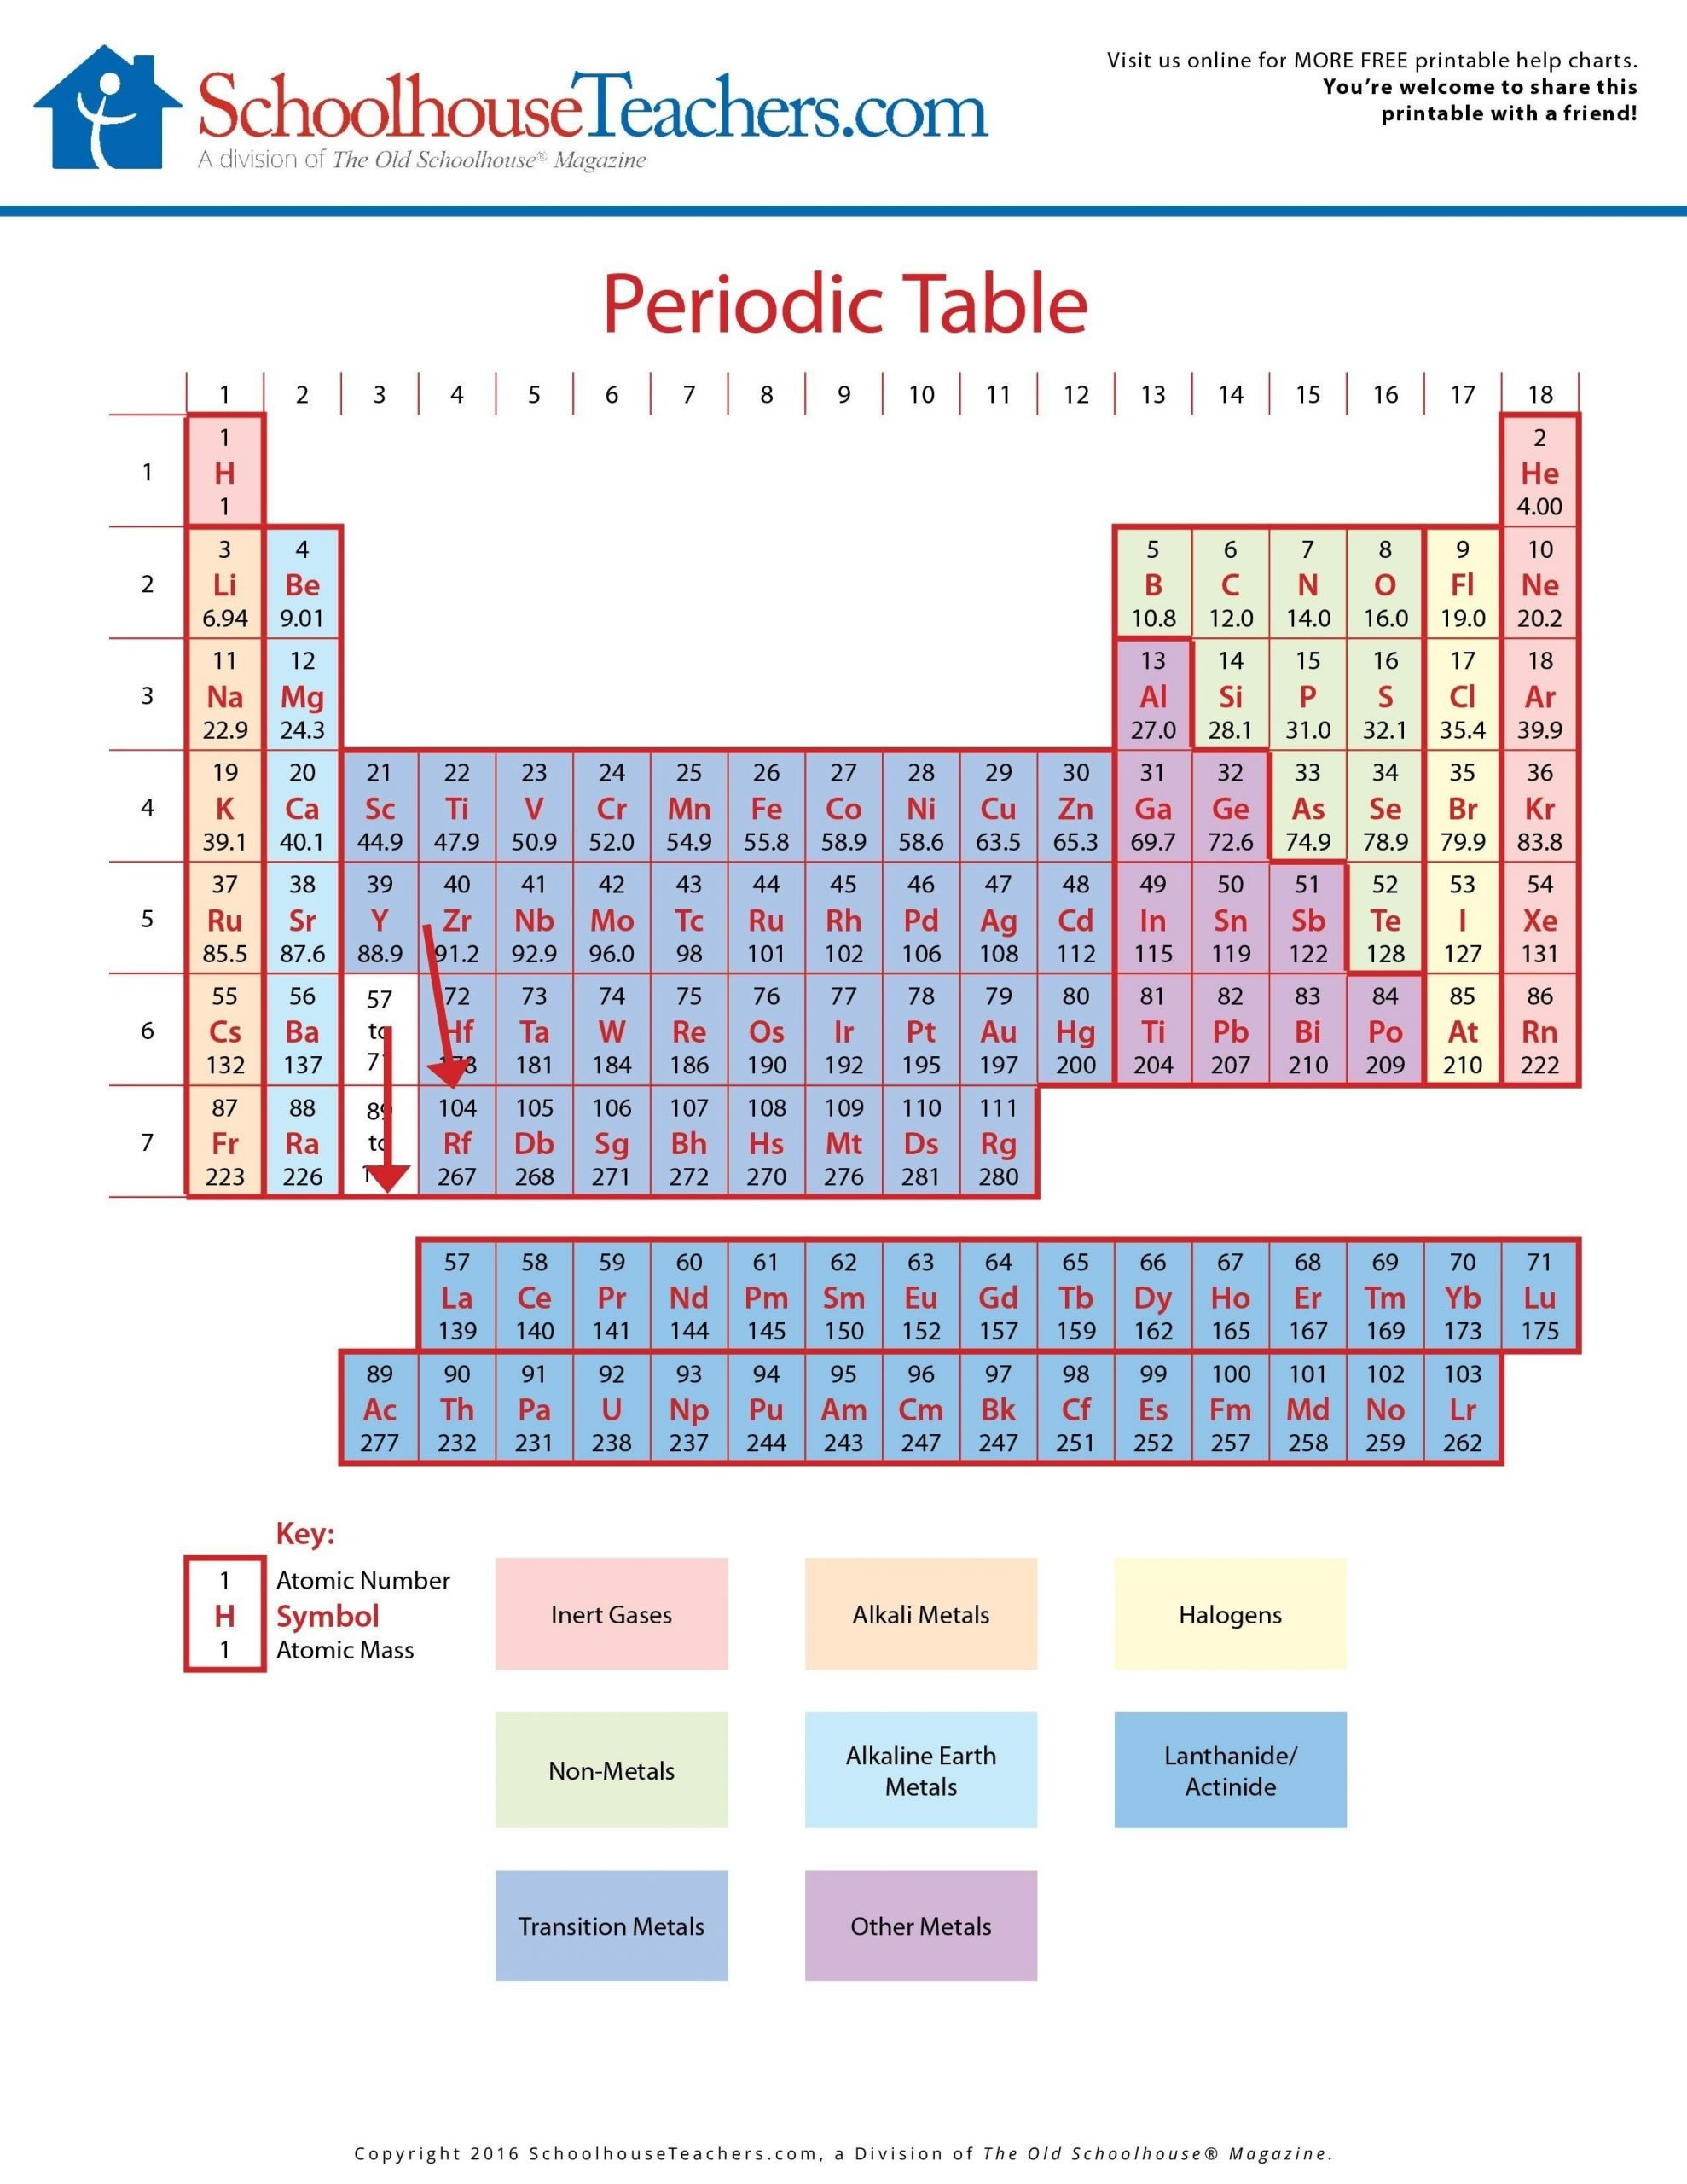 Martian Periodic Table Worksheet Answers Martian Periodic Table Worksheet